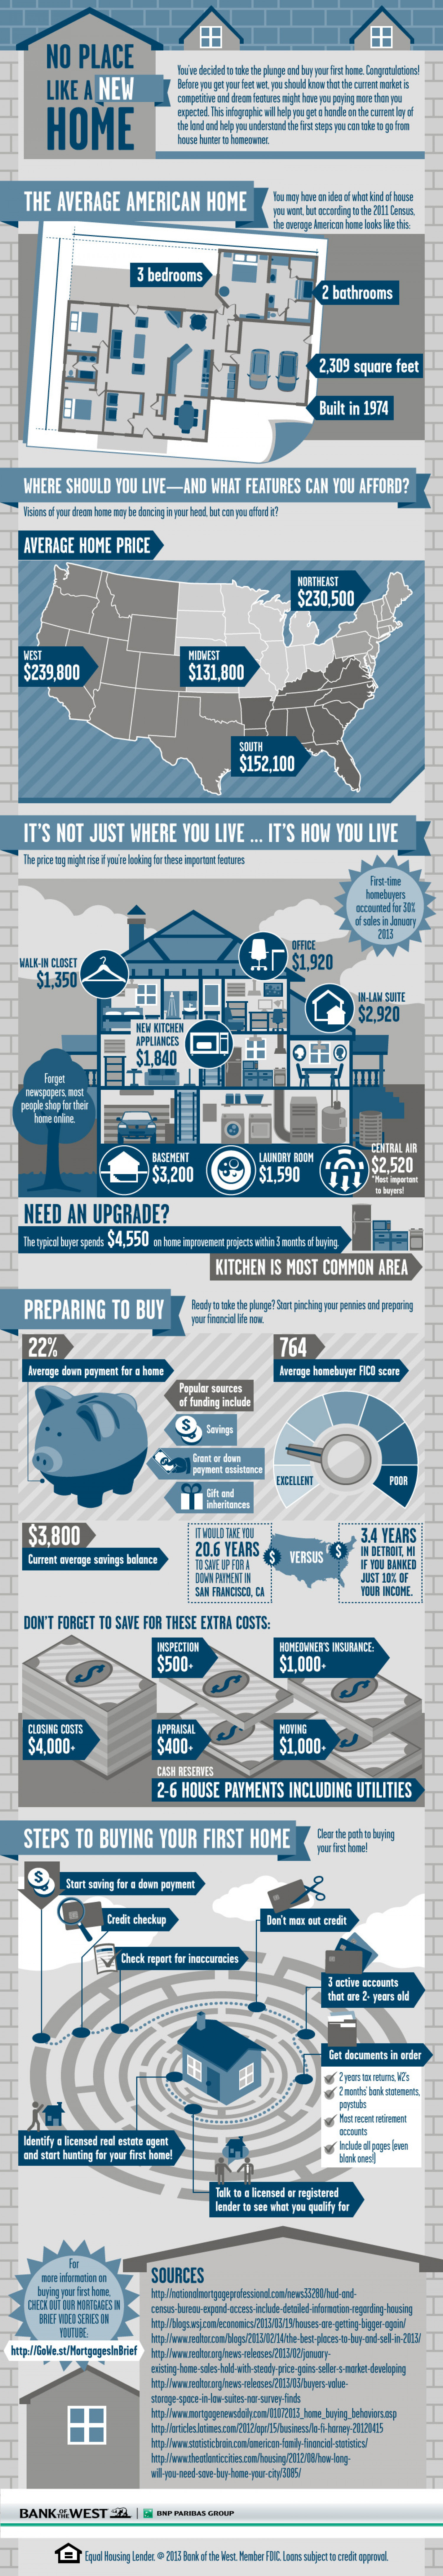 No Place Like a New Home  Infographic